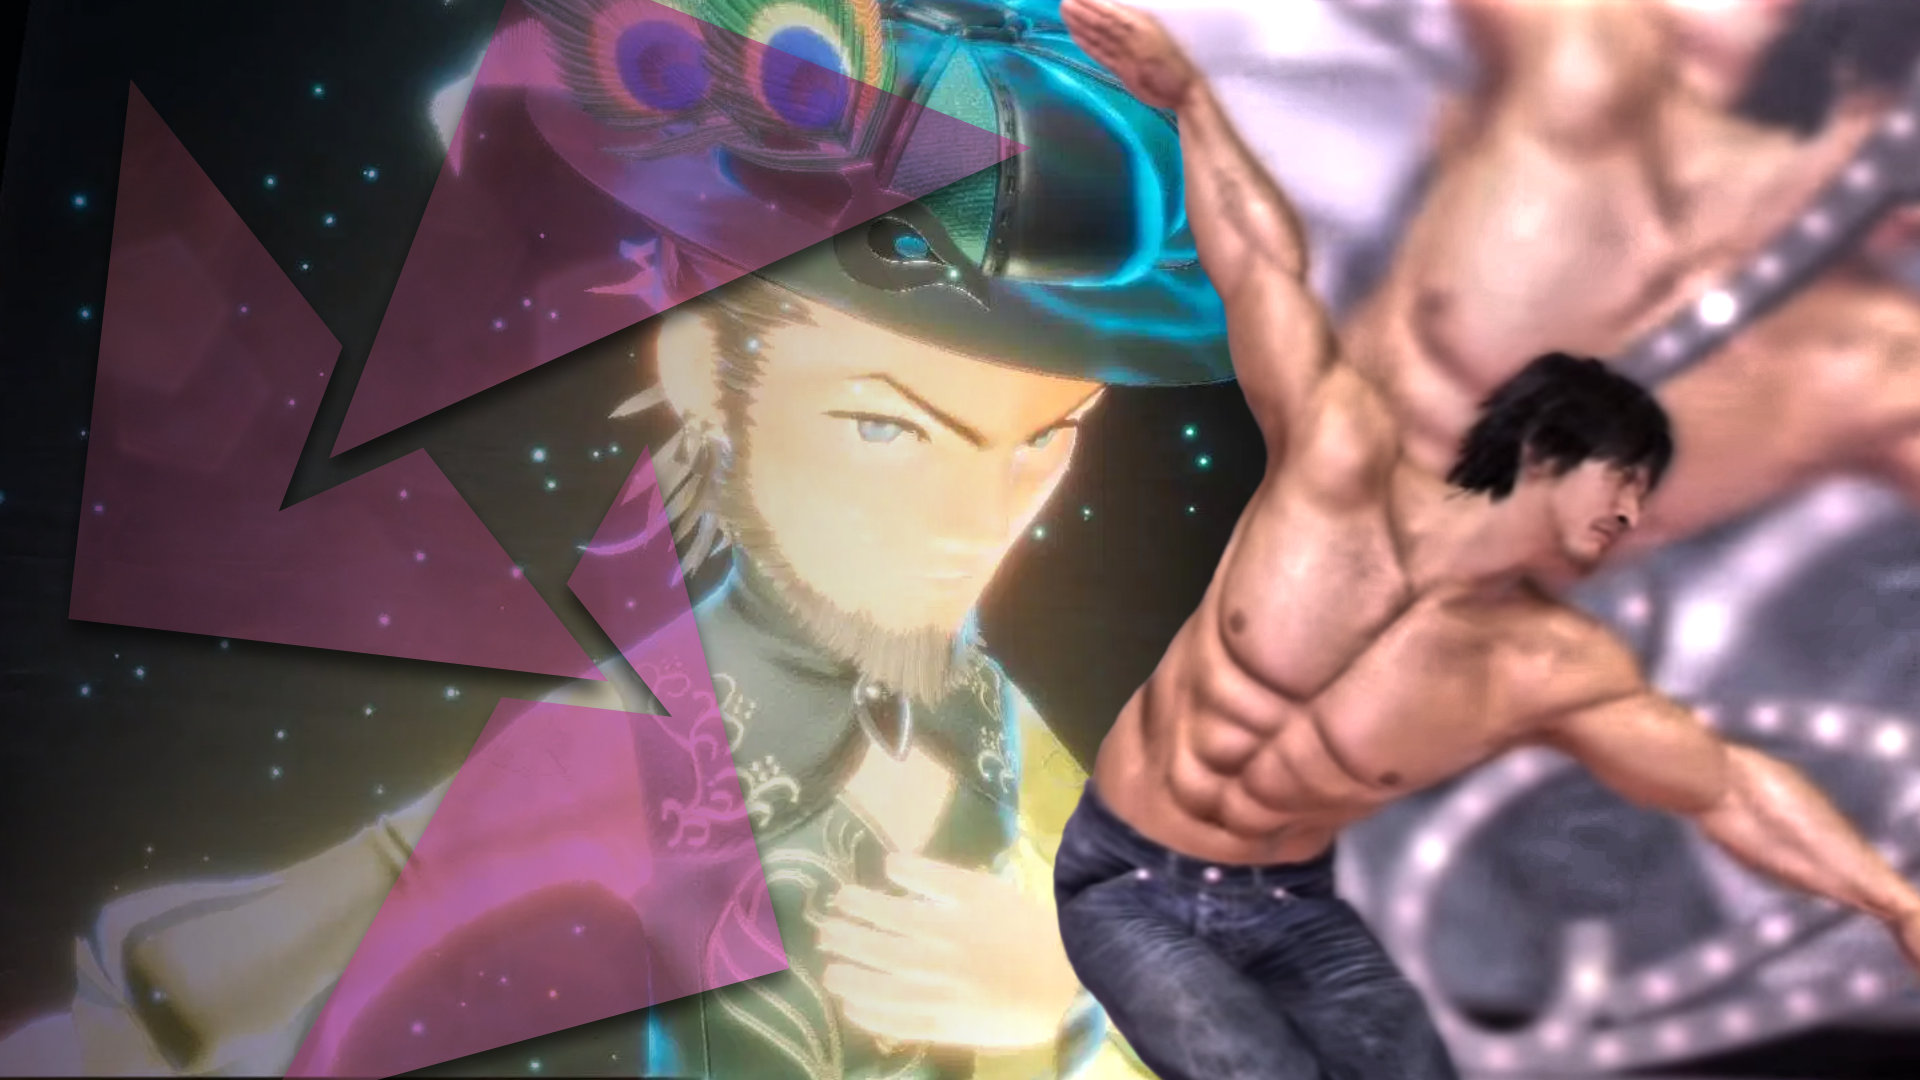 A bearded man in a fancy hat from the game Bravely Default 2 is in the background looking down at a glistening, well-muscled man dancing on a stage in Yakuza 5.